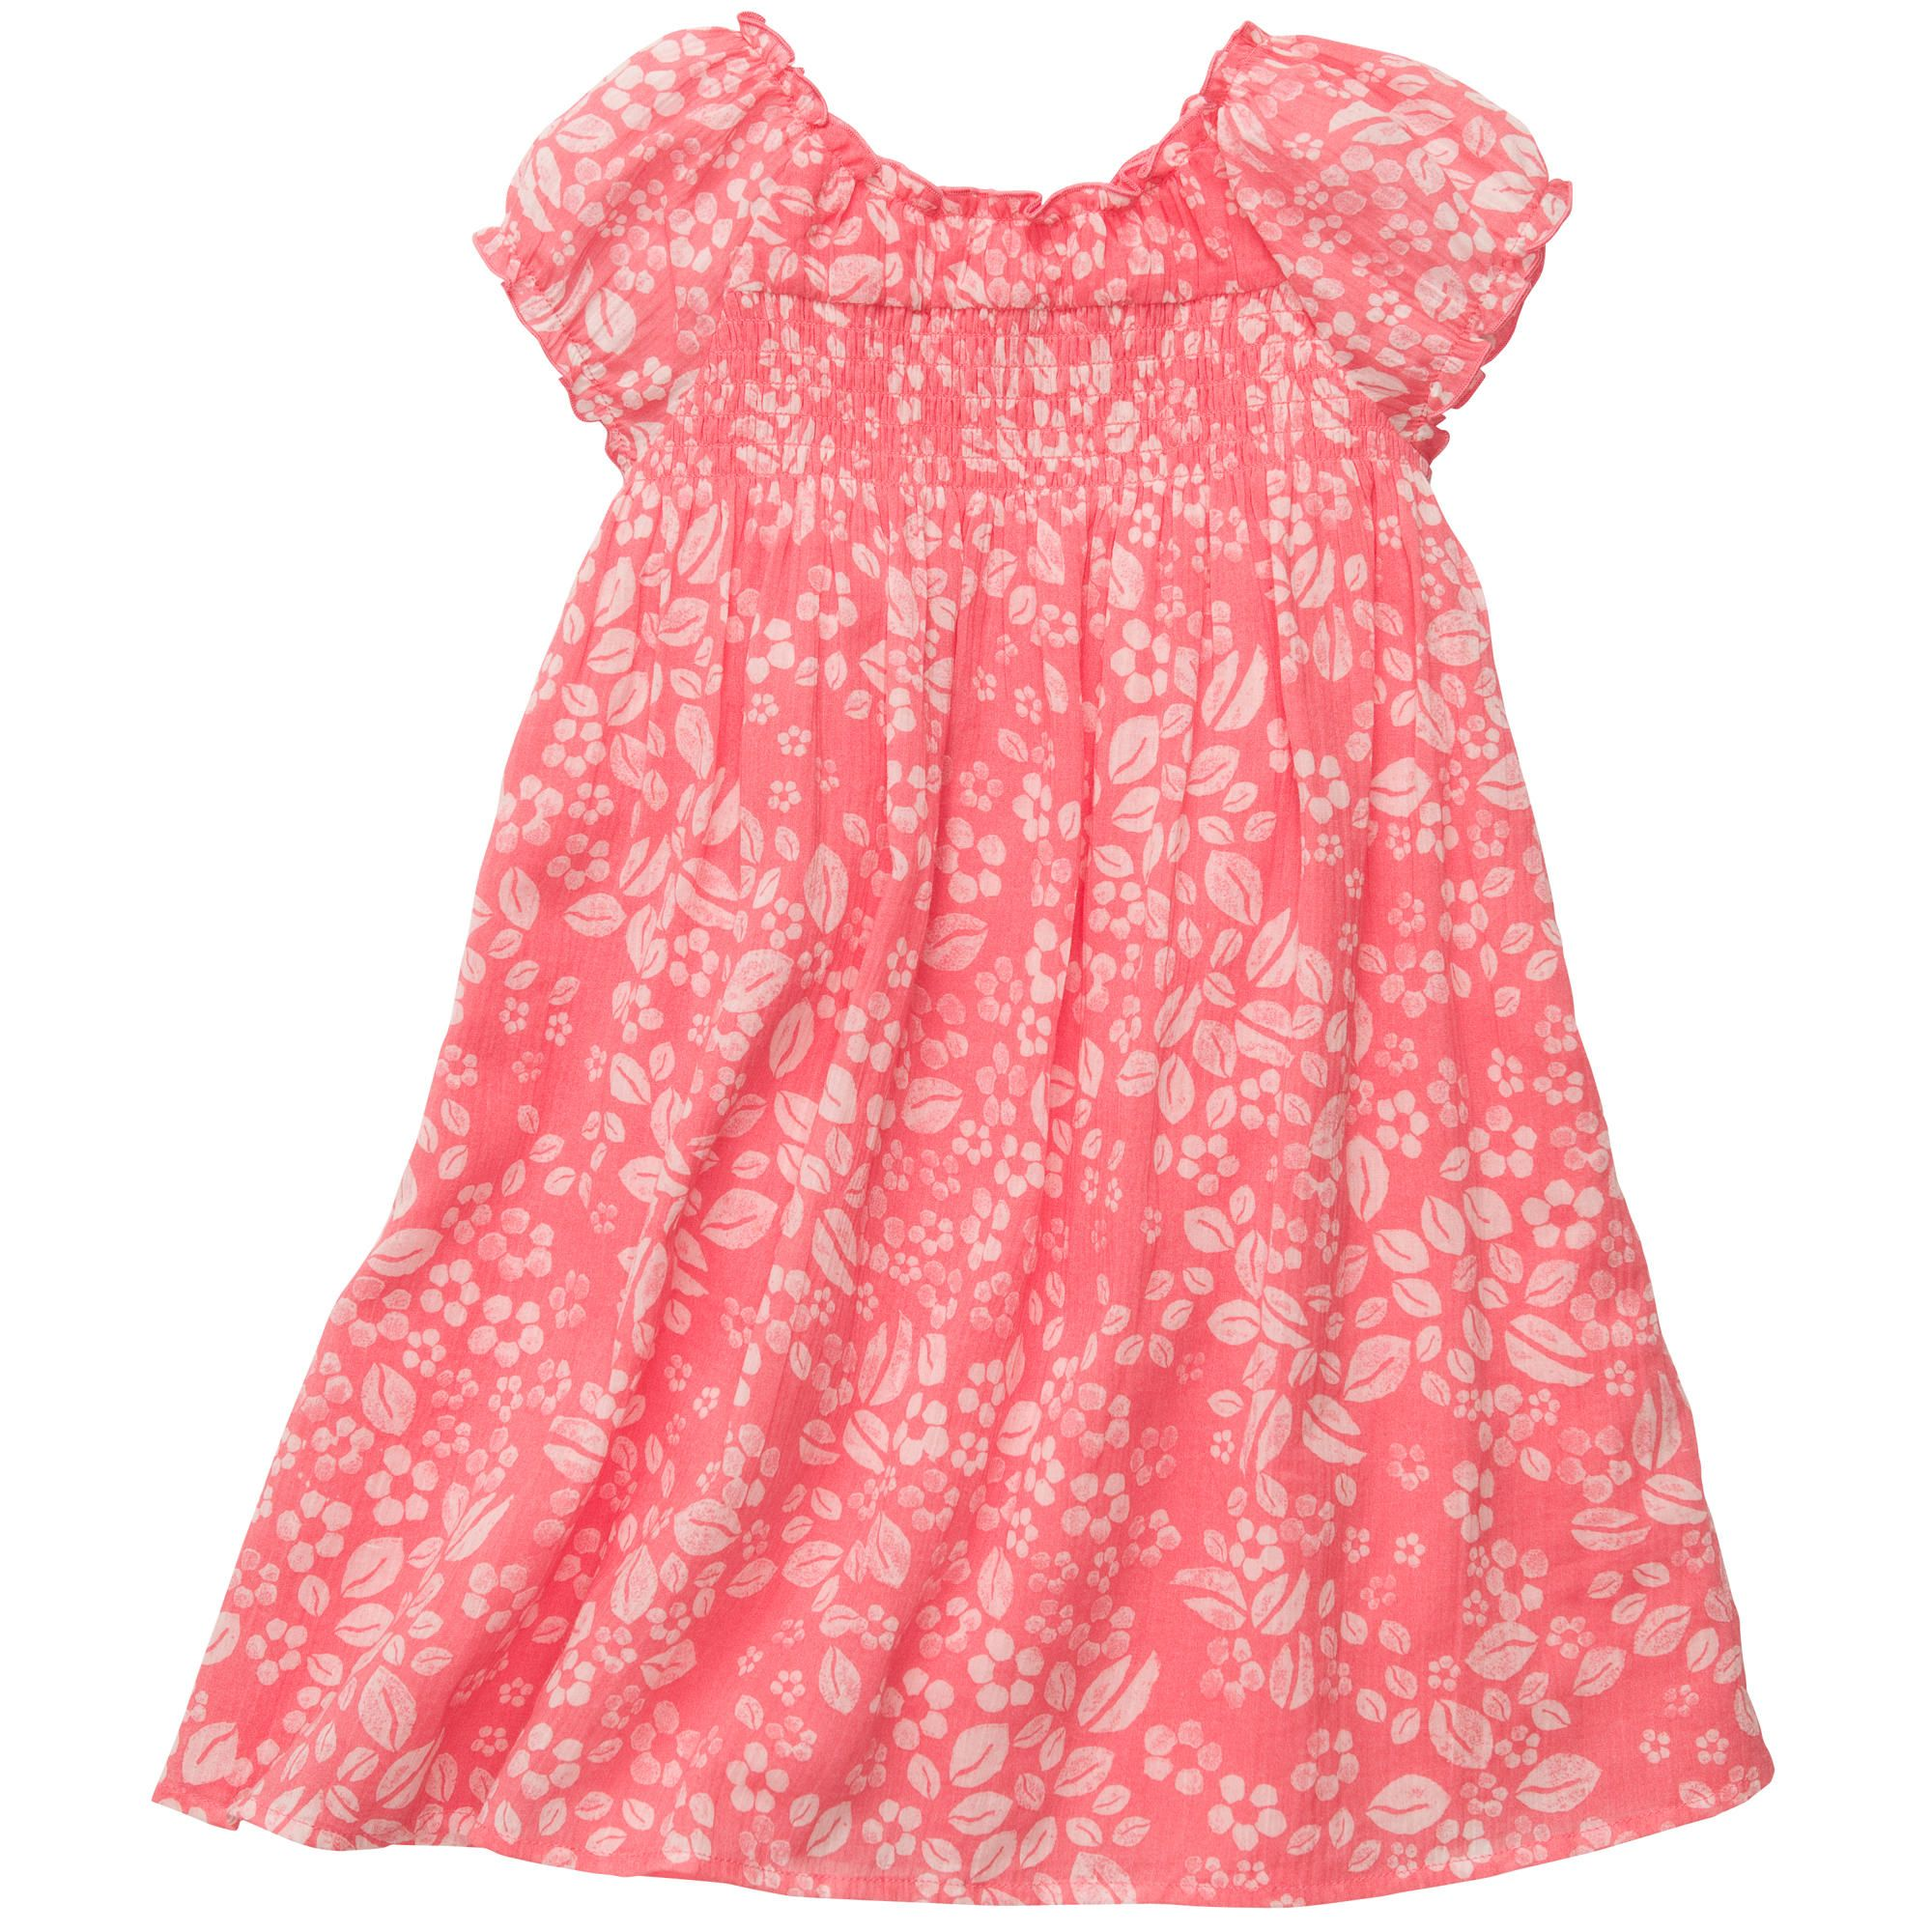 Crinkle Cotton Lawn Dress Baby Girl Dresses